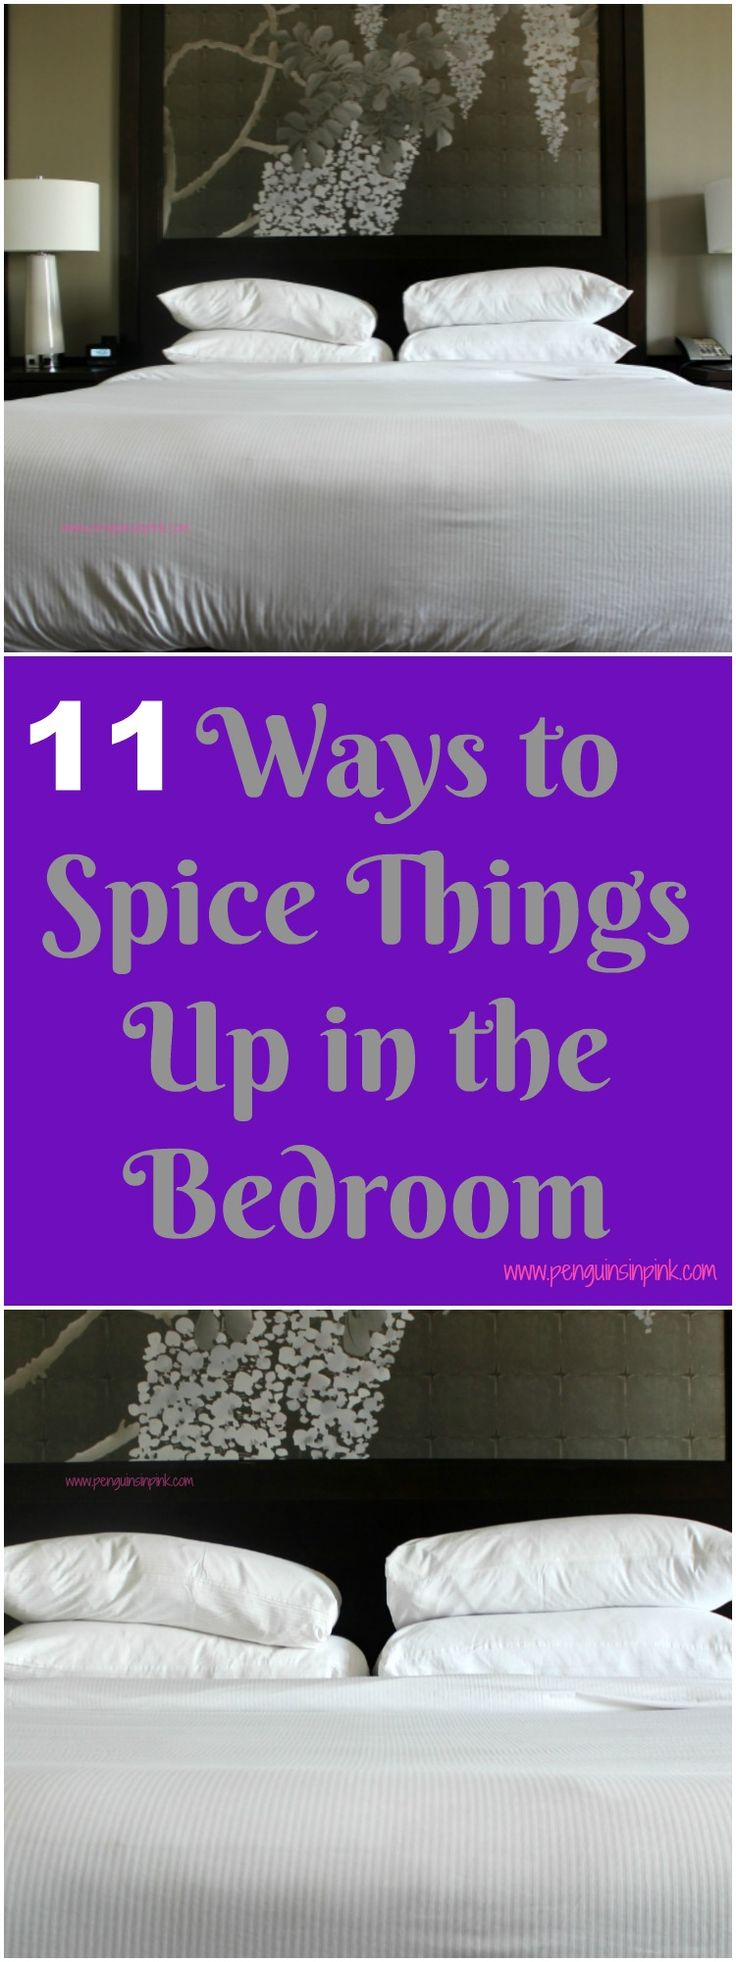 Looking to rev up your sex life  Check out these 11 healthy and fun ways. 1000  ideas about Spice Up Marriage on Pinterest   Happy marriage